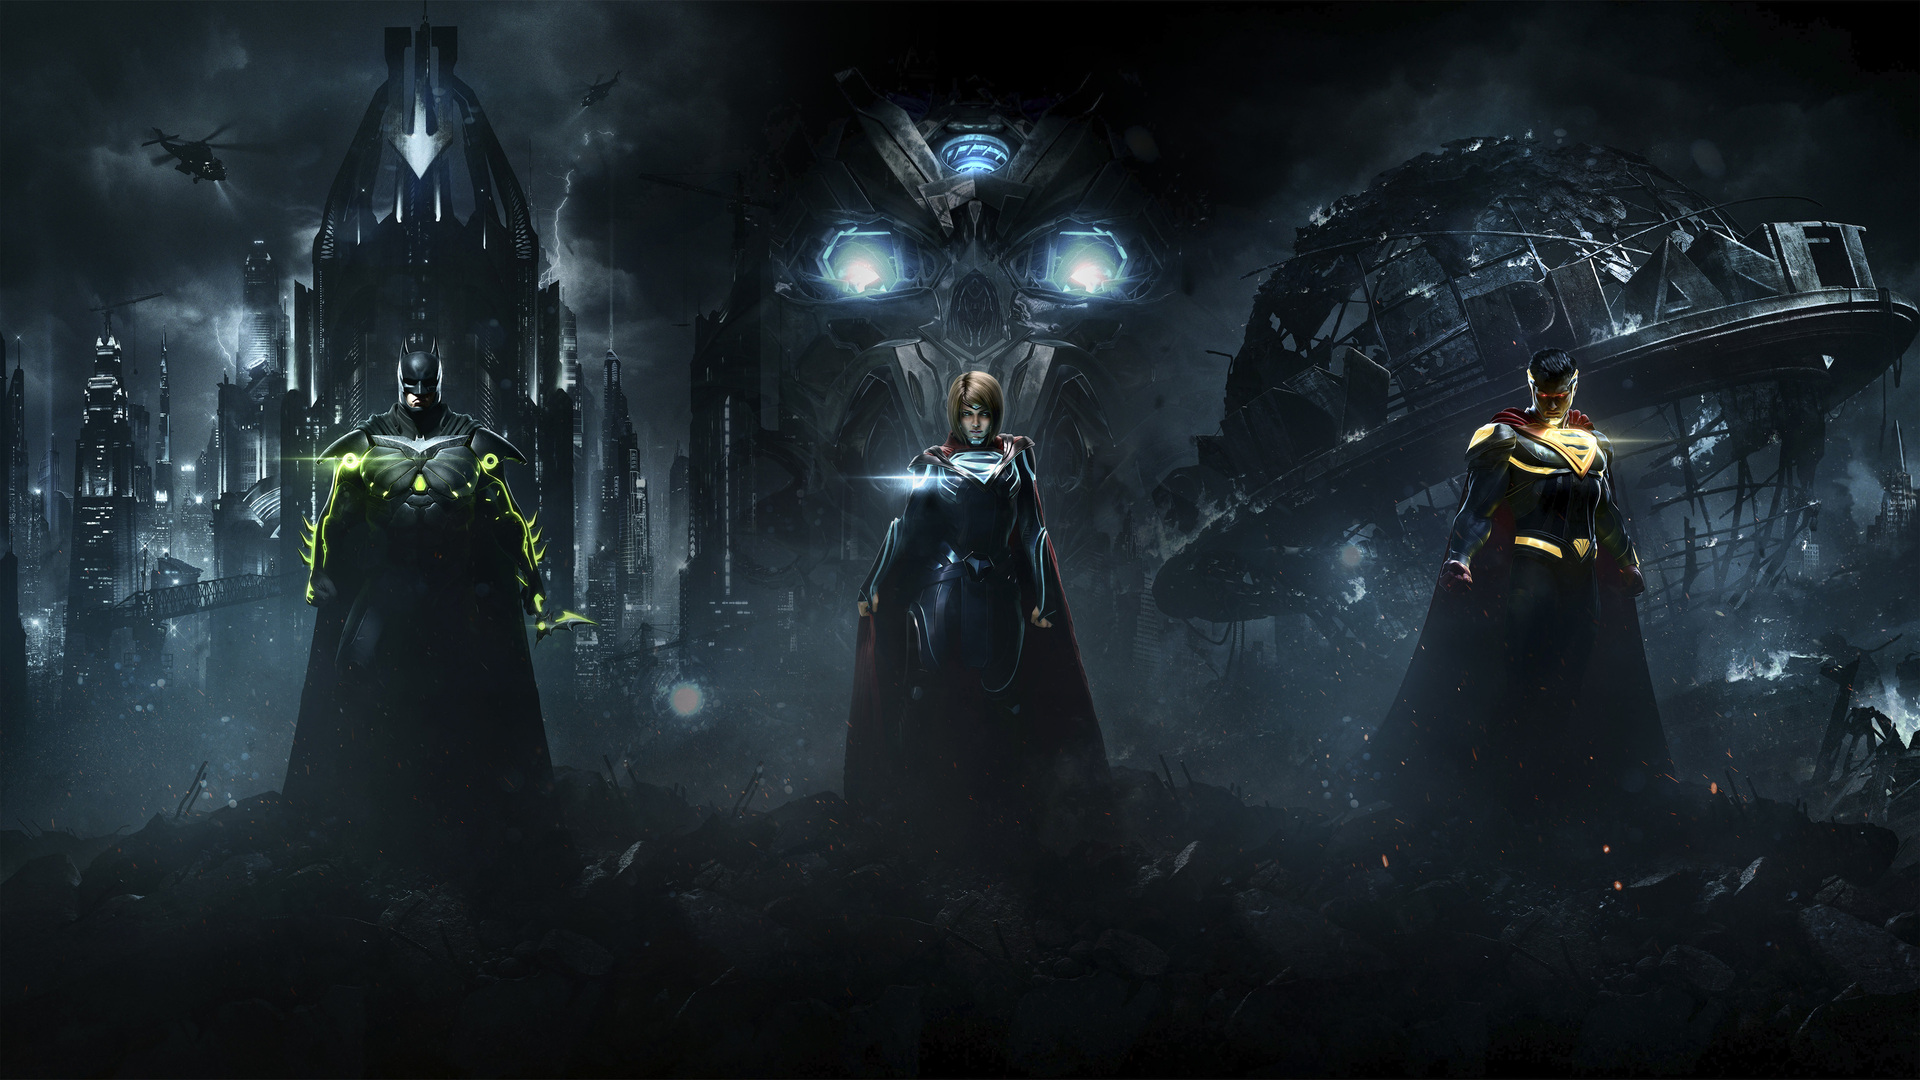 injustice-2-superman-supergirl-batman-combine-4k-k2.jpg